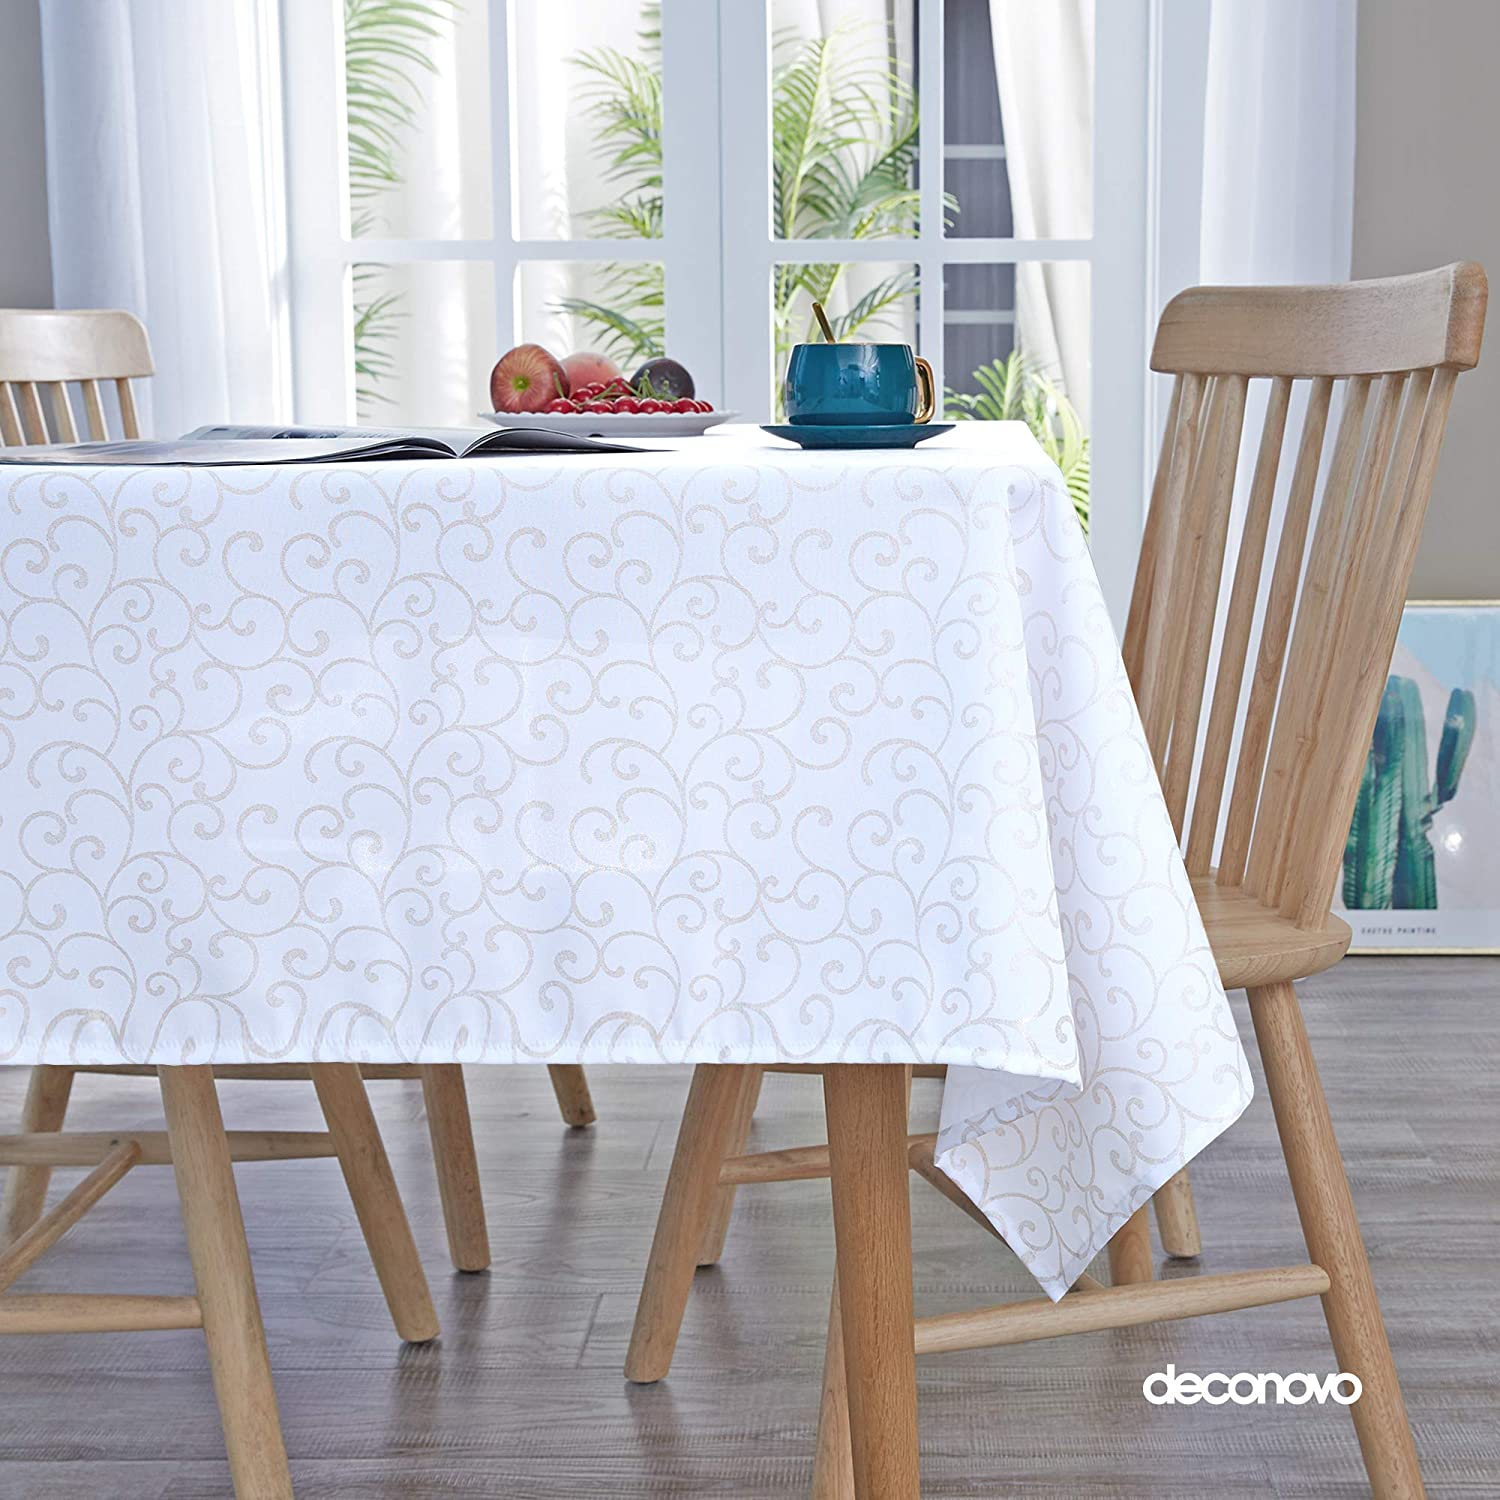 Deconovo Printed Clouds Pattern Tablecloth Decorative Wrinkle Resistant Oxford Table Cloth for Dining Room 54x84 Inch White